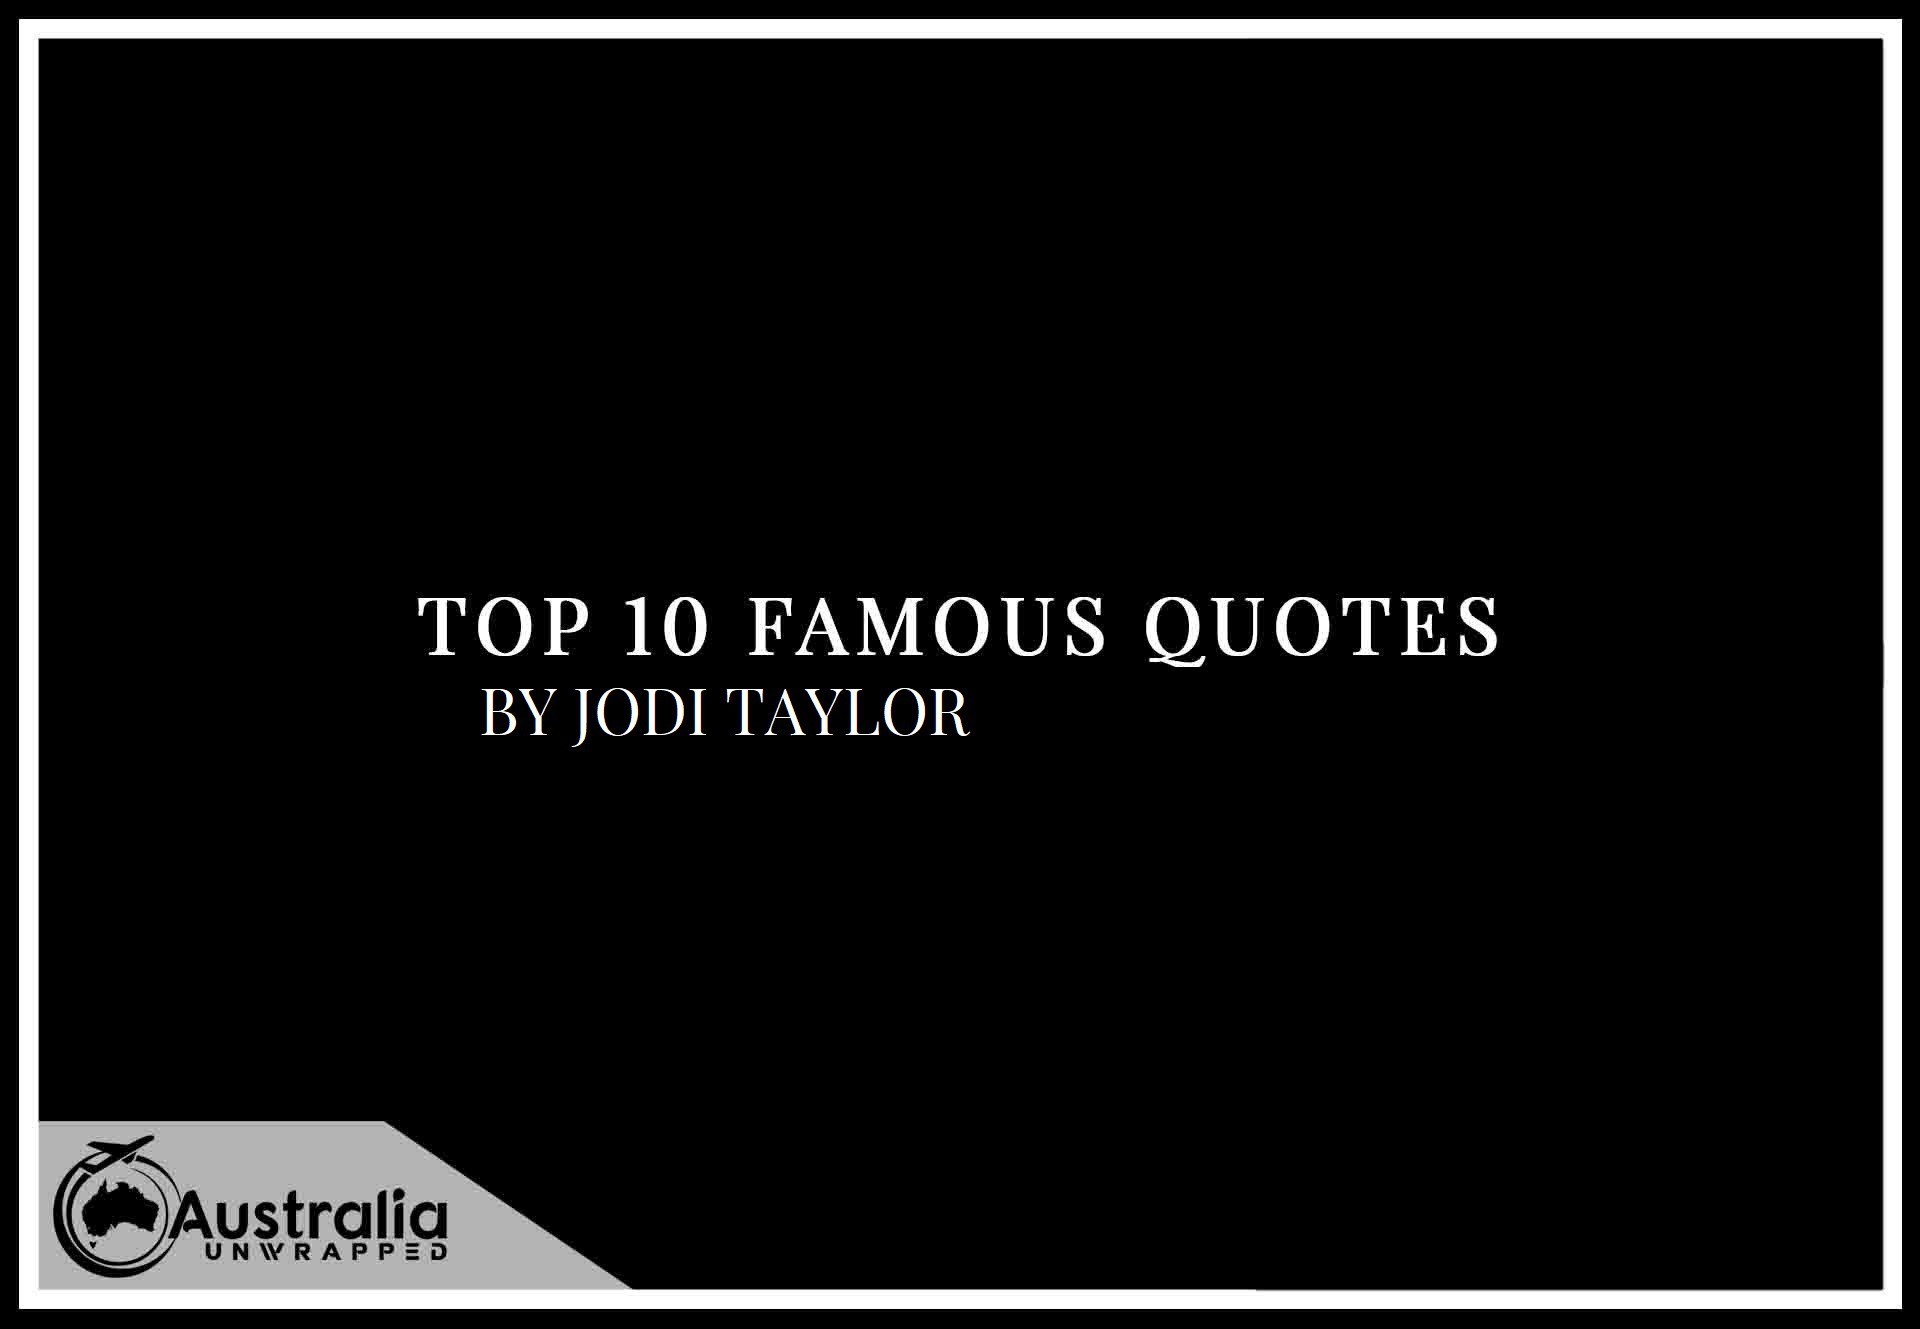 Top 10 Famous Quotes by Author Jodi Taylor